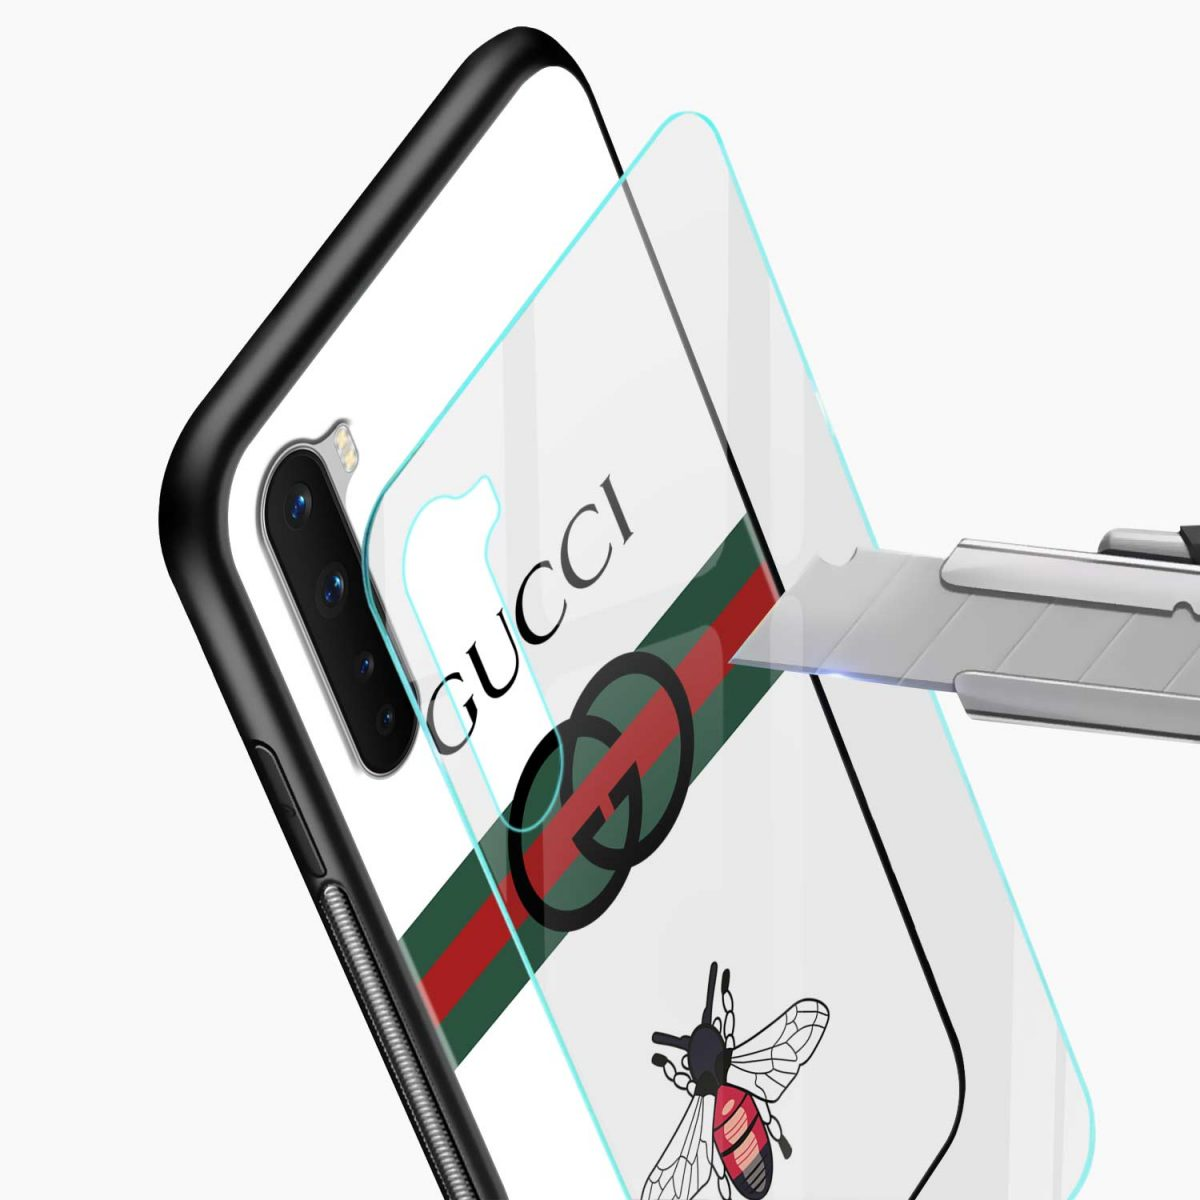 white gucci strips glass view oneplus nord back cover